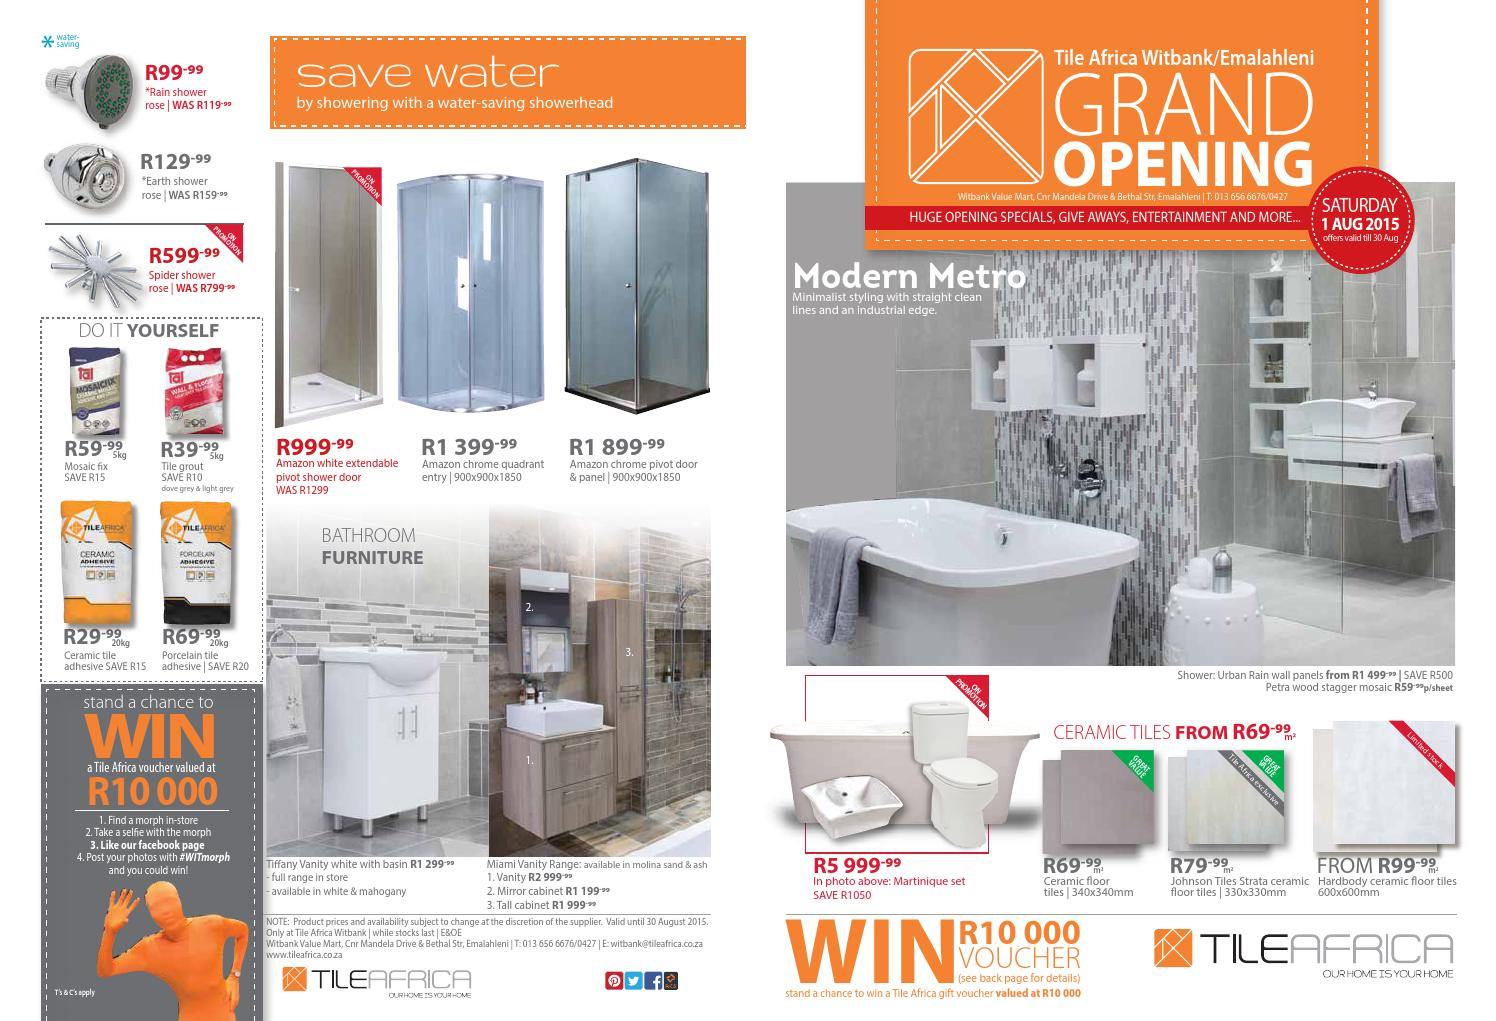 Tile Africa Witbank Grand Opening by Tile Africa - issuu